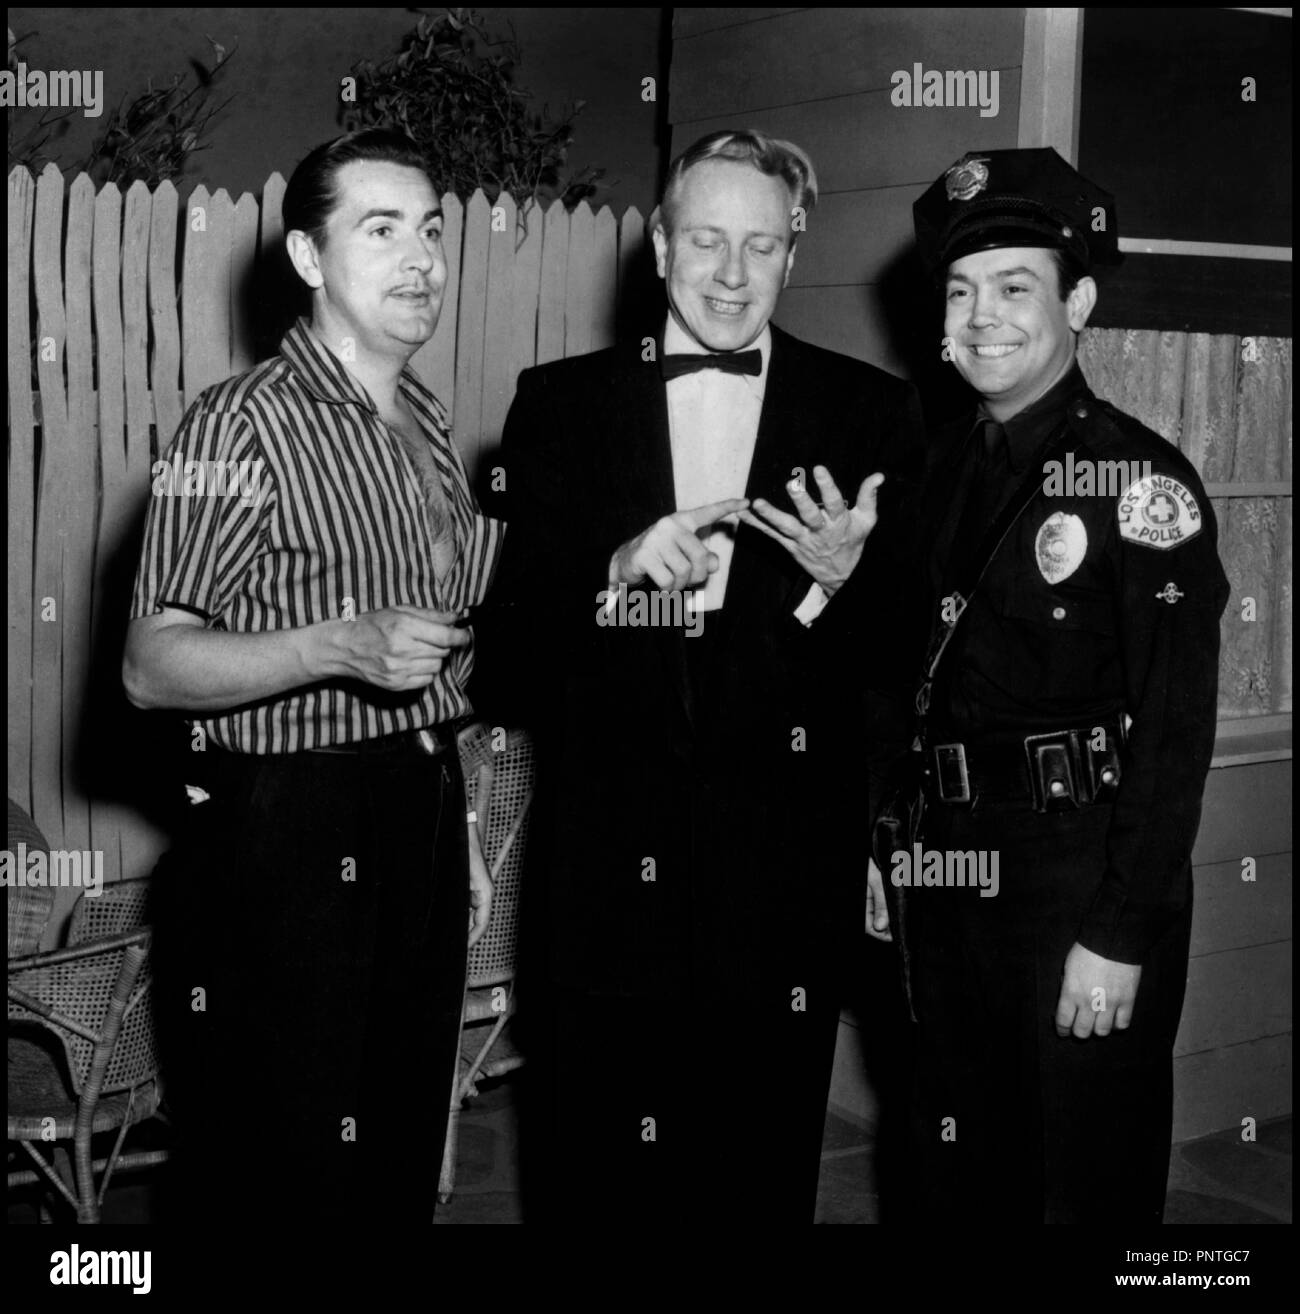 Prod DB © Reynolds Pictures / DR PLAN 9 FROM OUTER SPACE (PLAN 9 FROM OUTER SPACE) de Ed Wood 1958 USA avec Ed Wood, Jeron King Criswell et Paul Marco sur le tournage science-fiction, serie B,  ralisateur: Edward D. Wood Jr - Stock Image